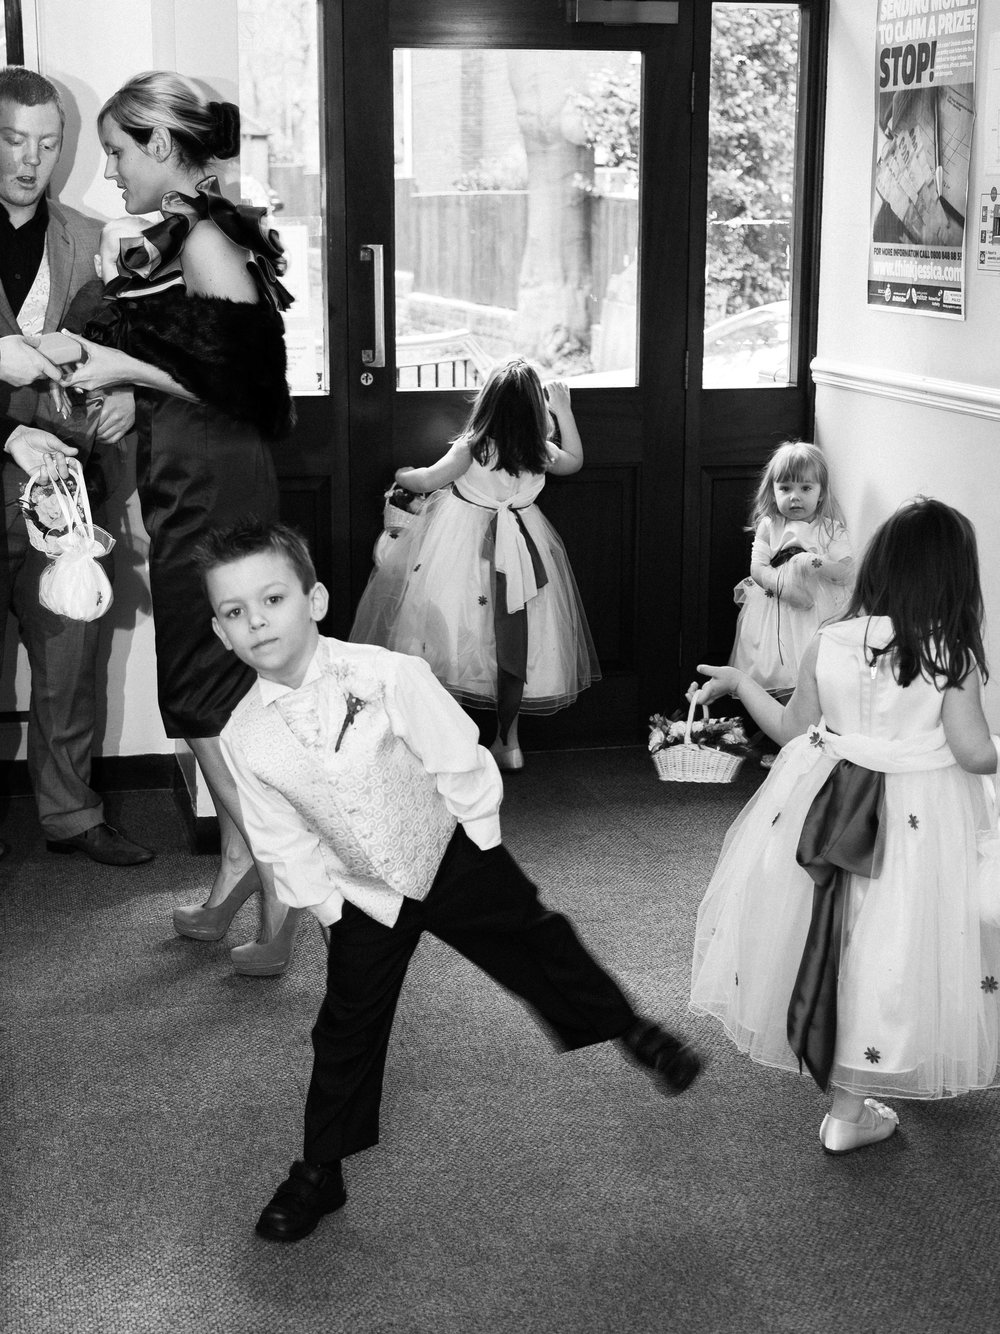 Children waiting for the bride